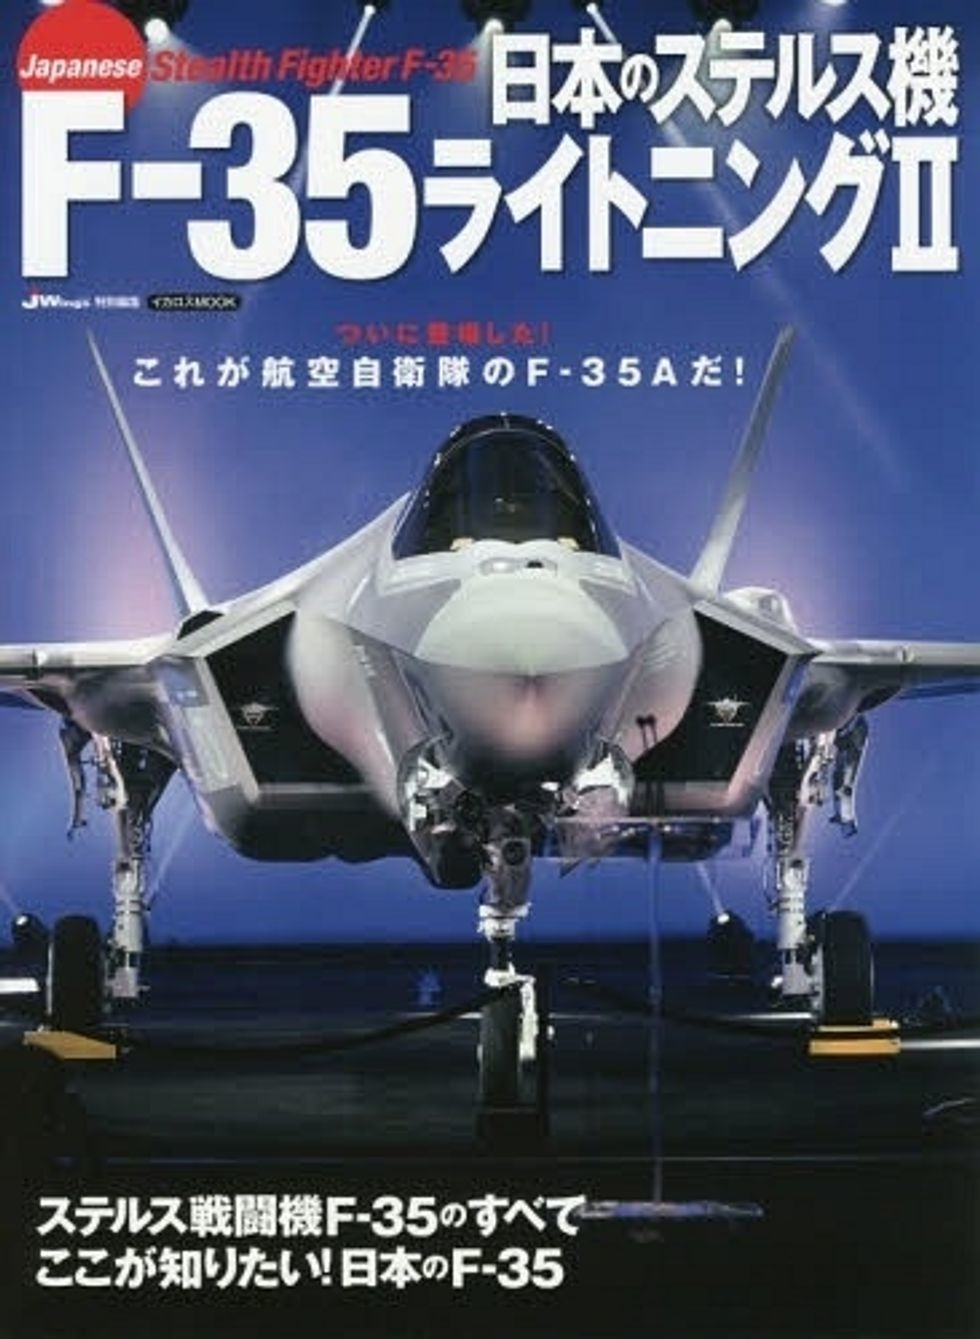 After A Japanese Pilot Was Killed, The F-35 Stealth Jet Has Been Under A Microscope